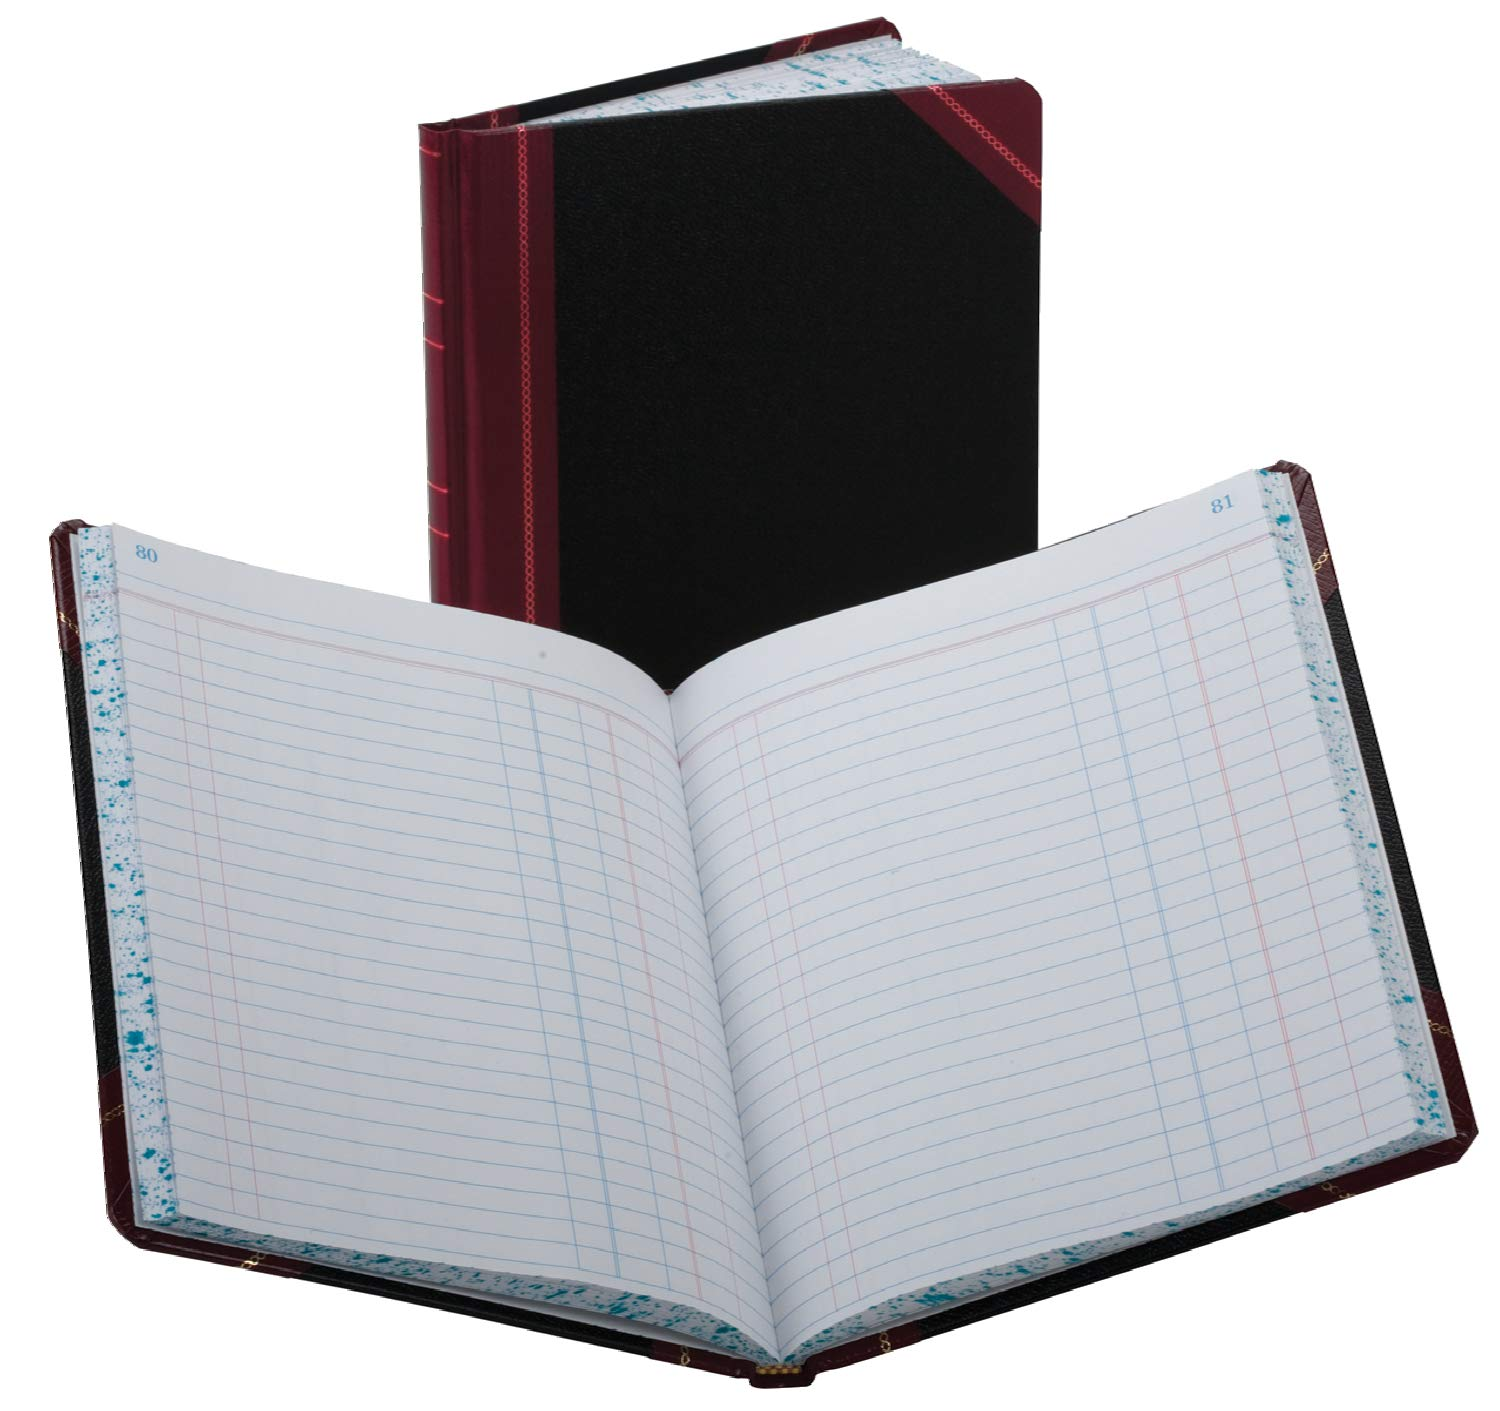 Boorum & Pease Record/Account Book, Black/Red Cover, Journal Rule, 9-5/8 x 7-5/8, 150 Pages (38-150-J)